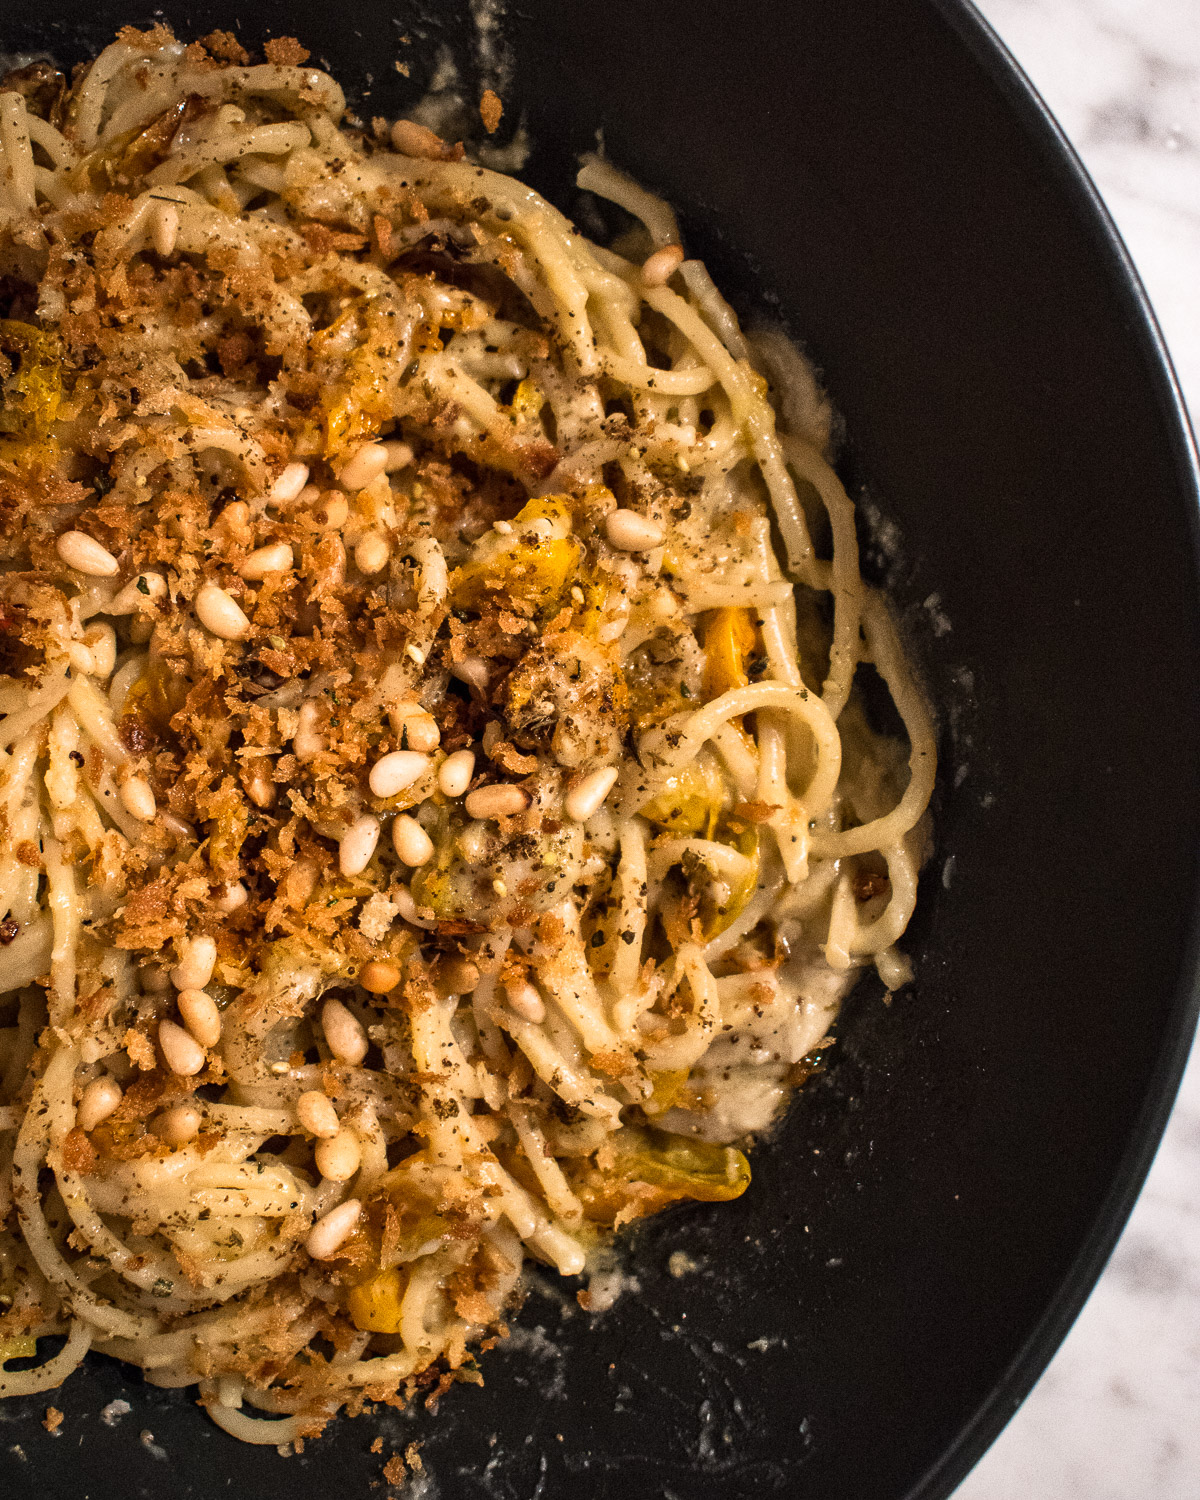 Herbed bread crumbs, toasted pine nuts and za'atar garnish the Roasted Eggplant and Cherry Tomato Pasta.